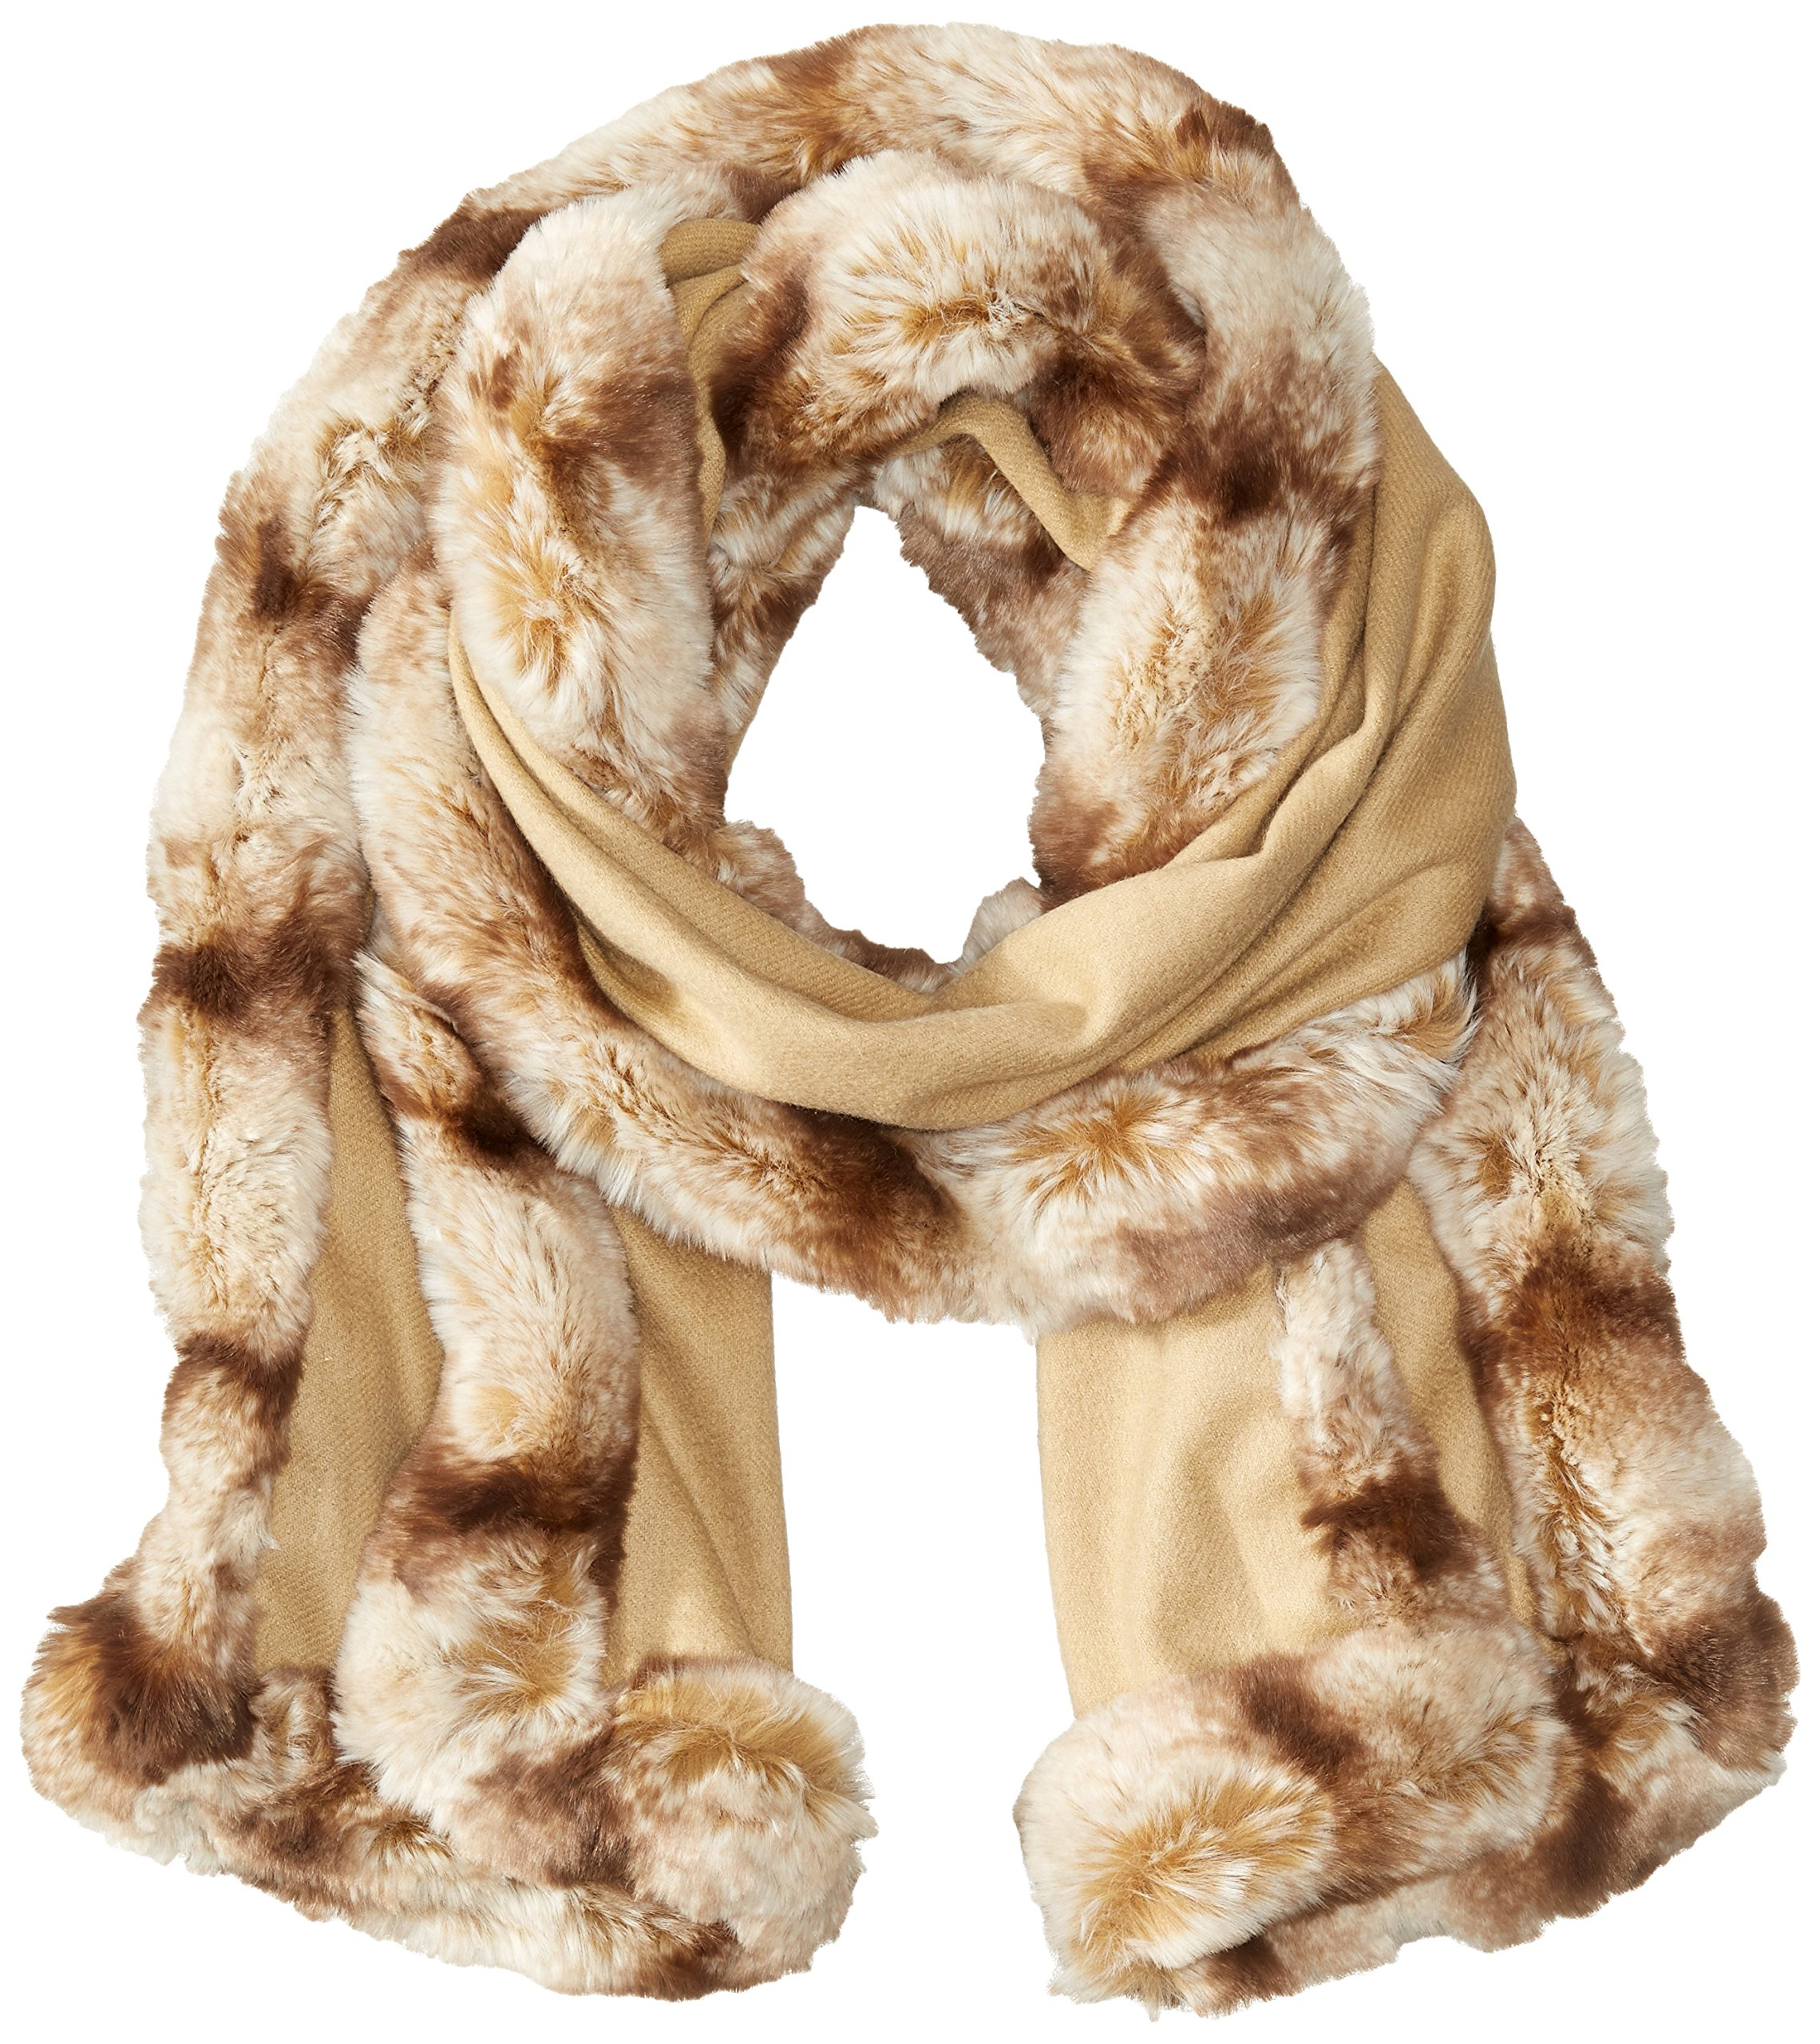 BADGLEY MISCHKA Women's Faux Trim Chinchilla Wrap, Camo/Almond, One Size